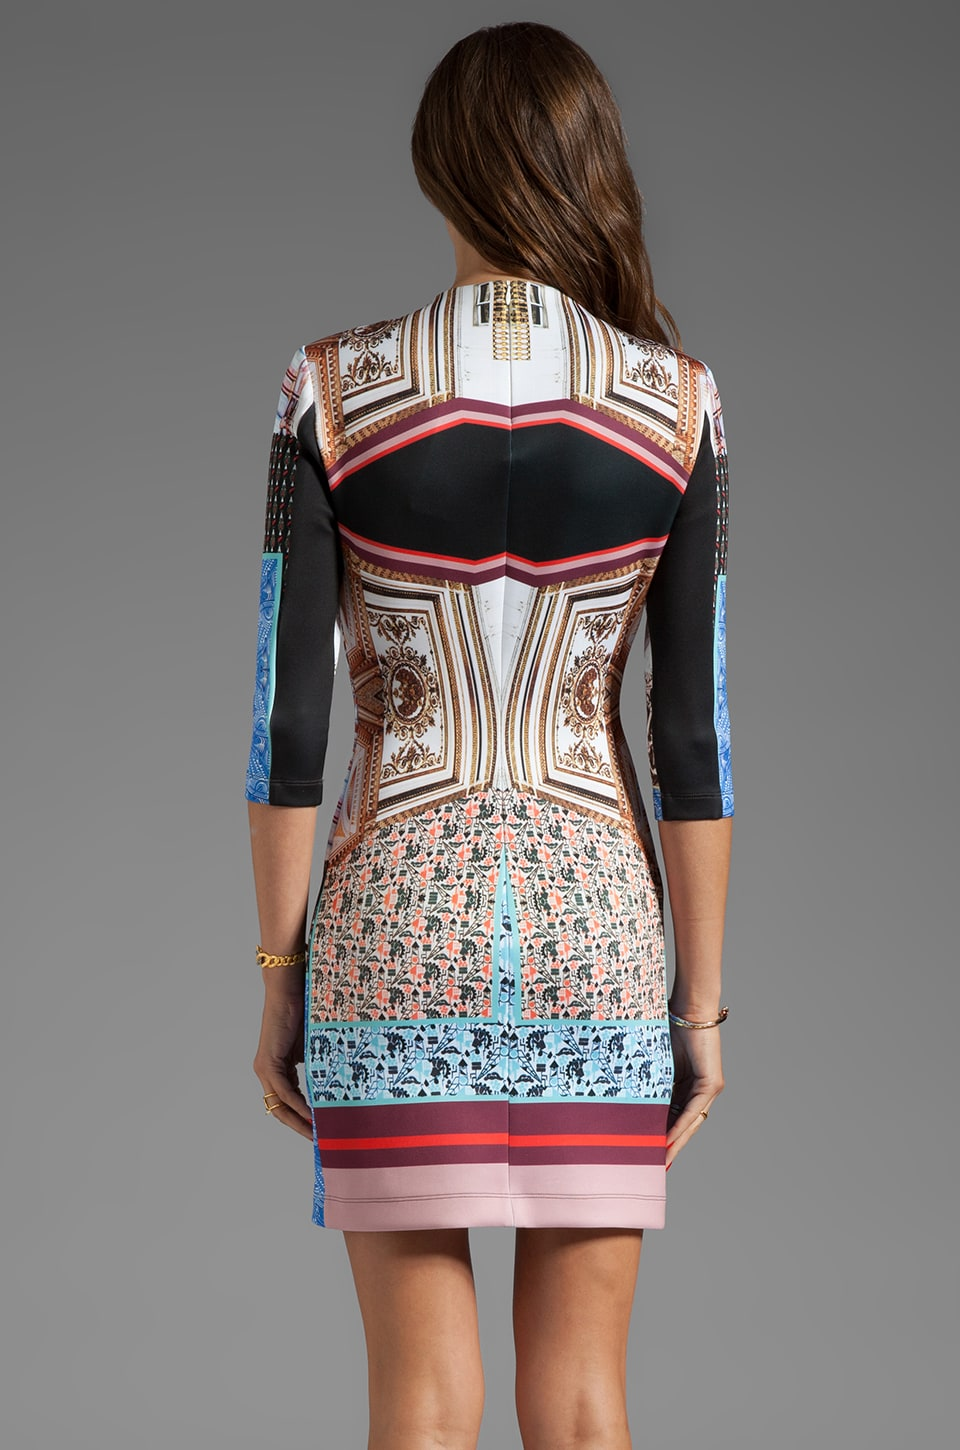 Clover Canyon Royal Palace Interior Neoprene Dress in Multi